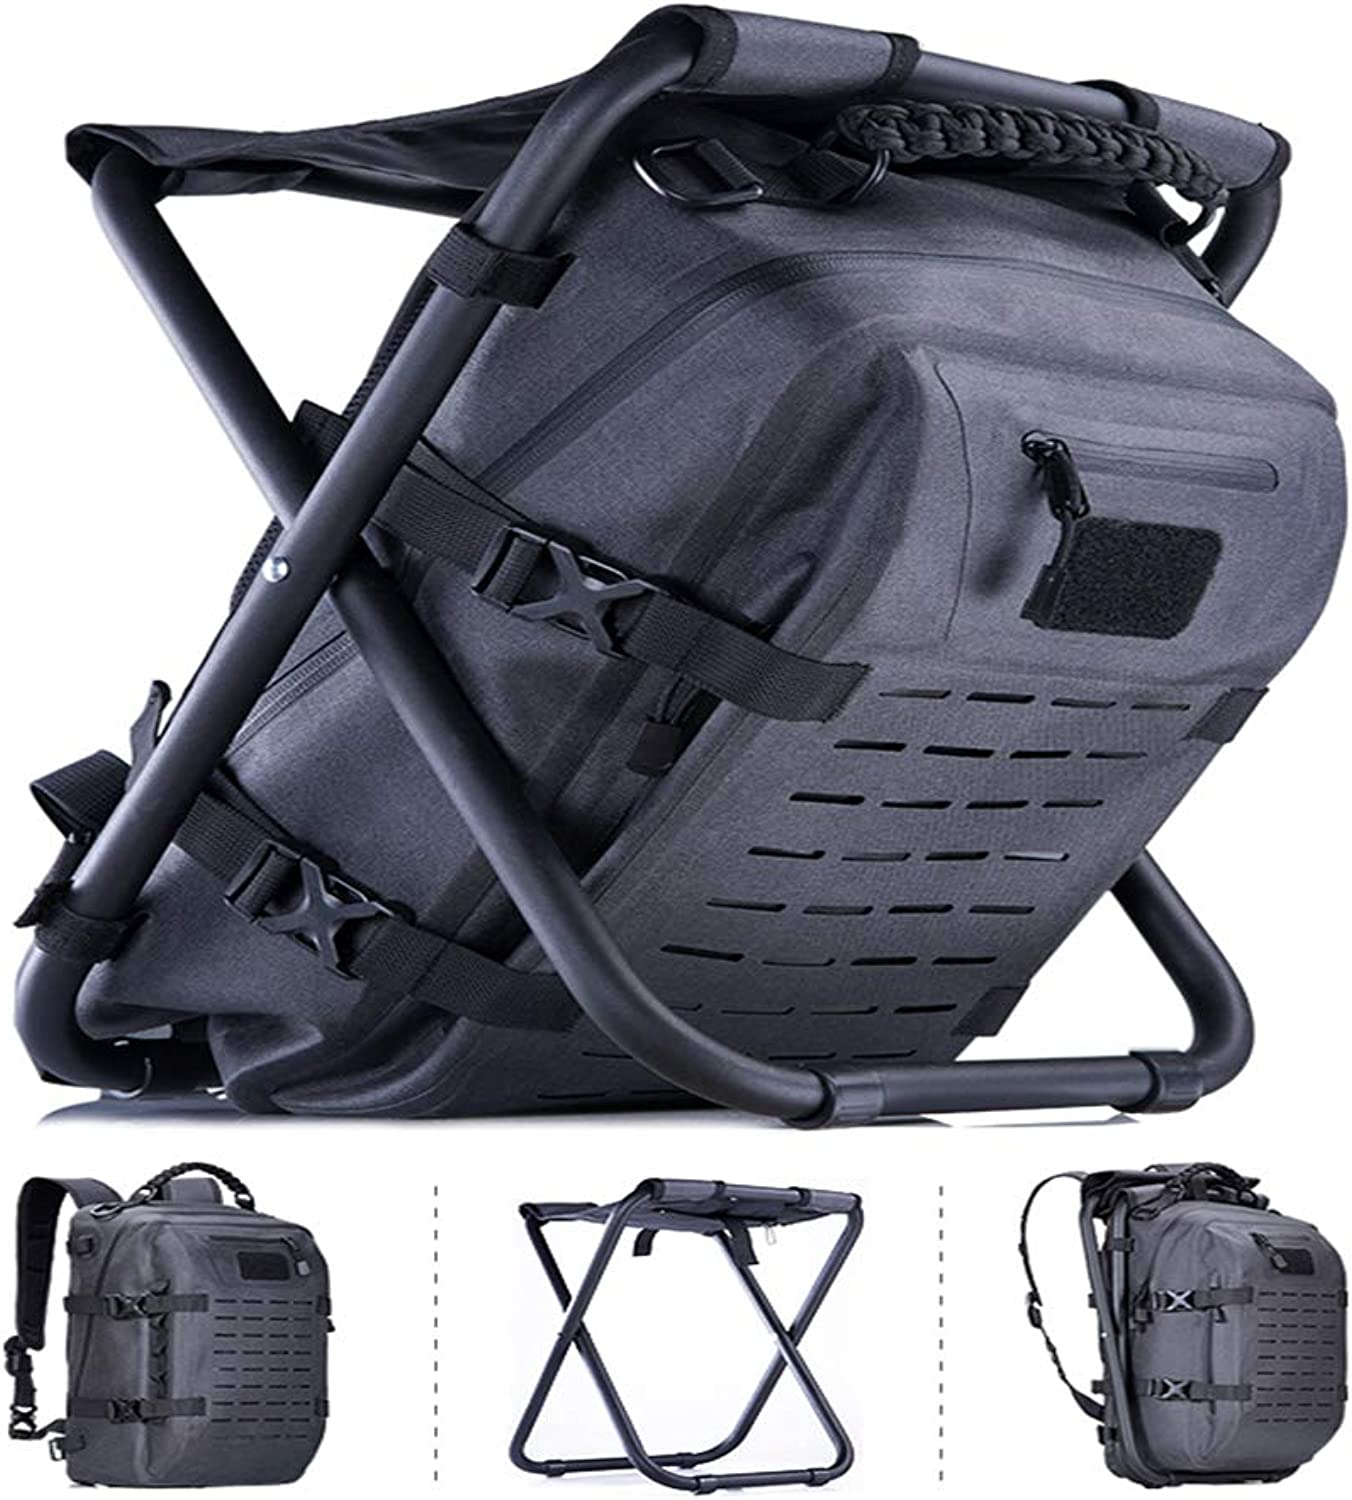 Folding Backpack Chair Black Leather Outdoor Backpack Folding Cooler and Stool Backpack Hiking Backpack